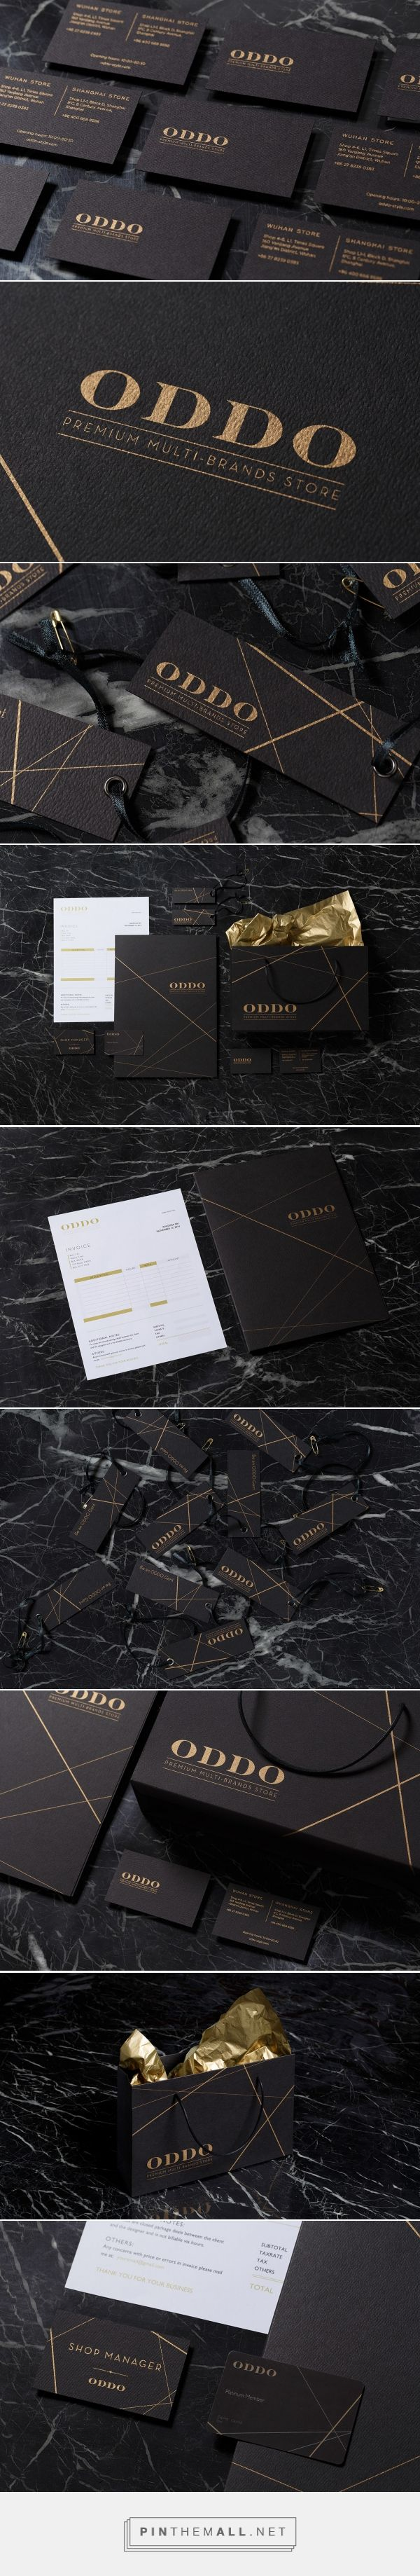 ODDO Fashion Branding and Packaging by Frames | Fivestar Branding Agency – Design and Branding Agency & Curated Inspiration Gallery